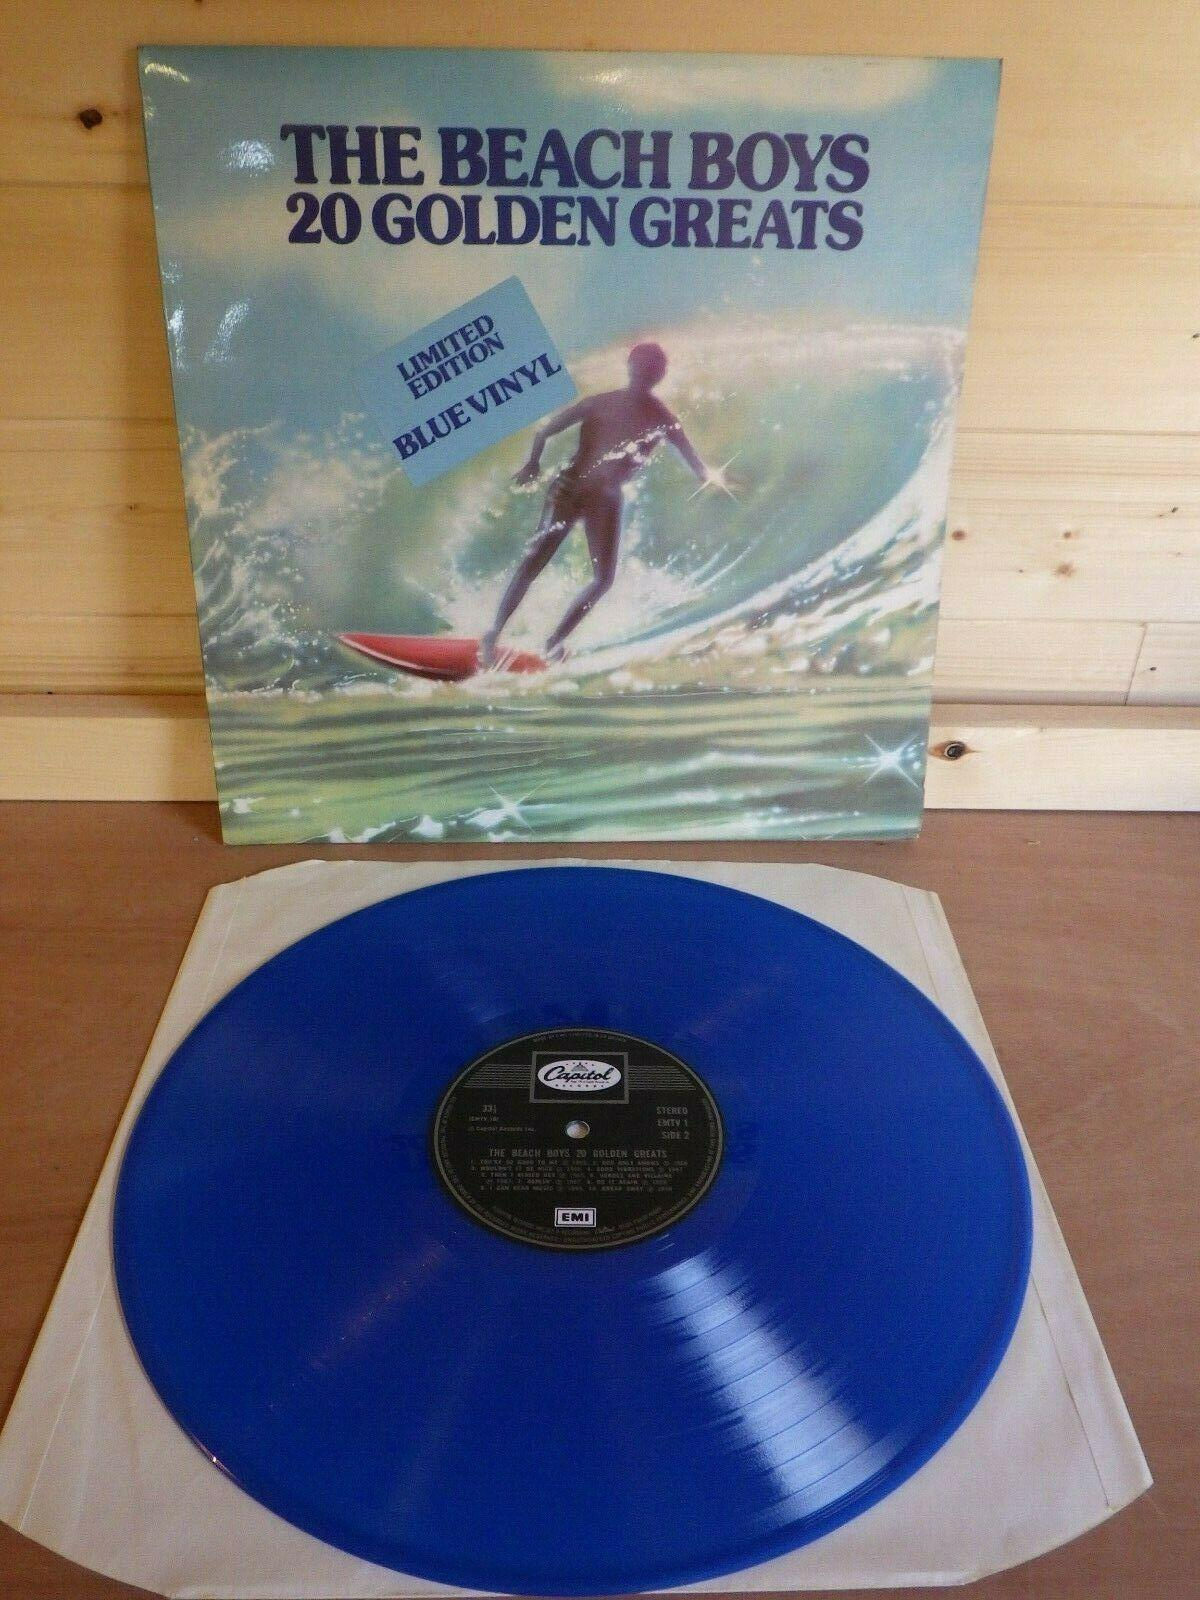 Beach Boys, Golden greatest Hits, BLUE Vinyl LP, limited edition, EMTV1 NM/NM